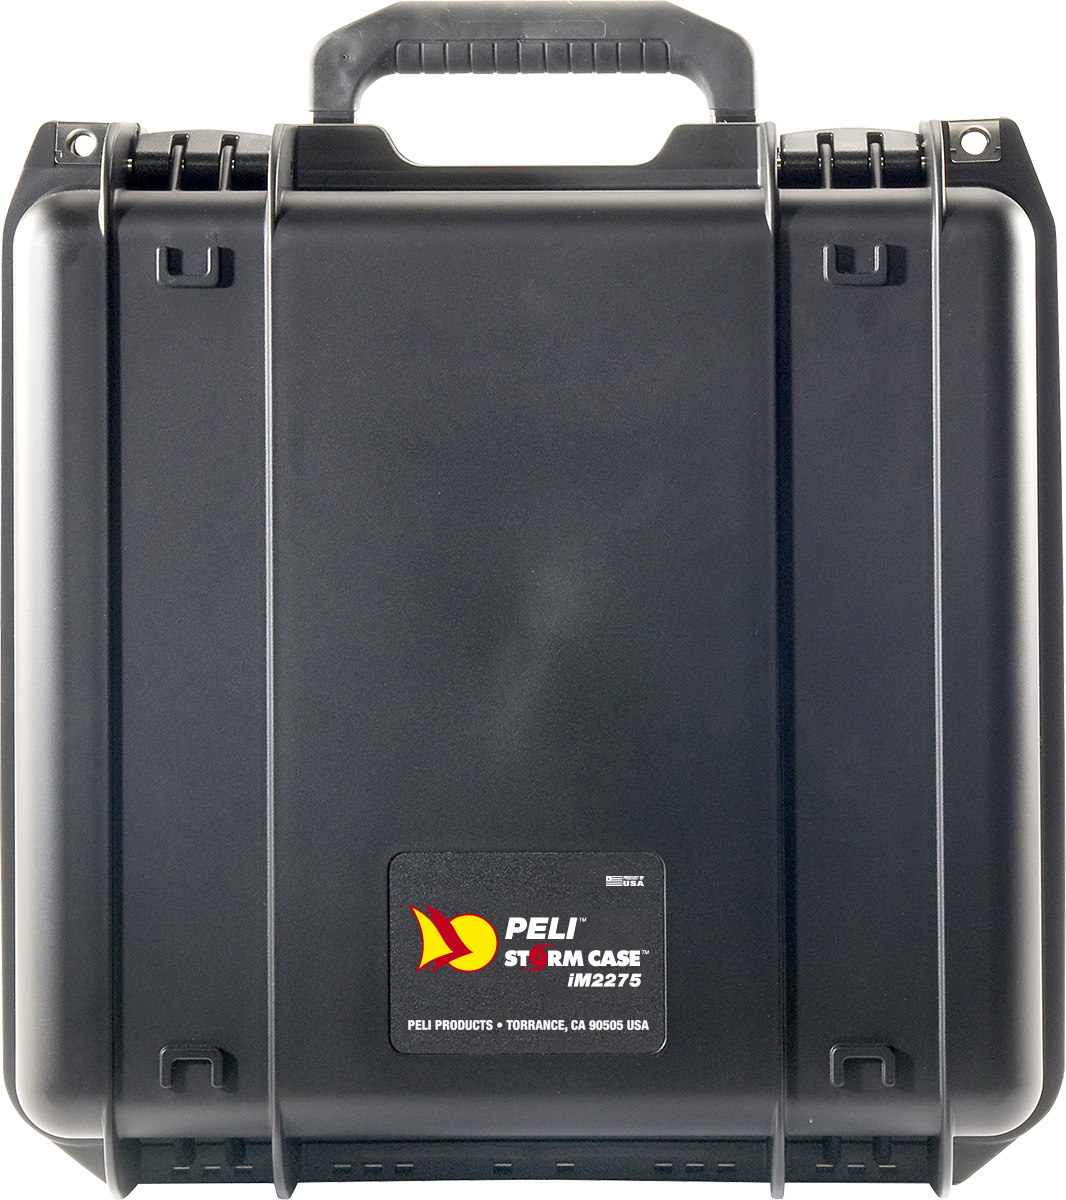 peli drone hard cases im 2275